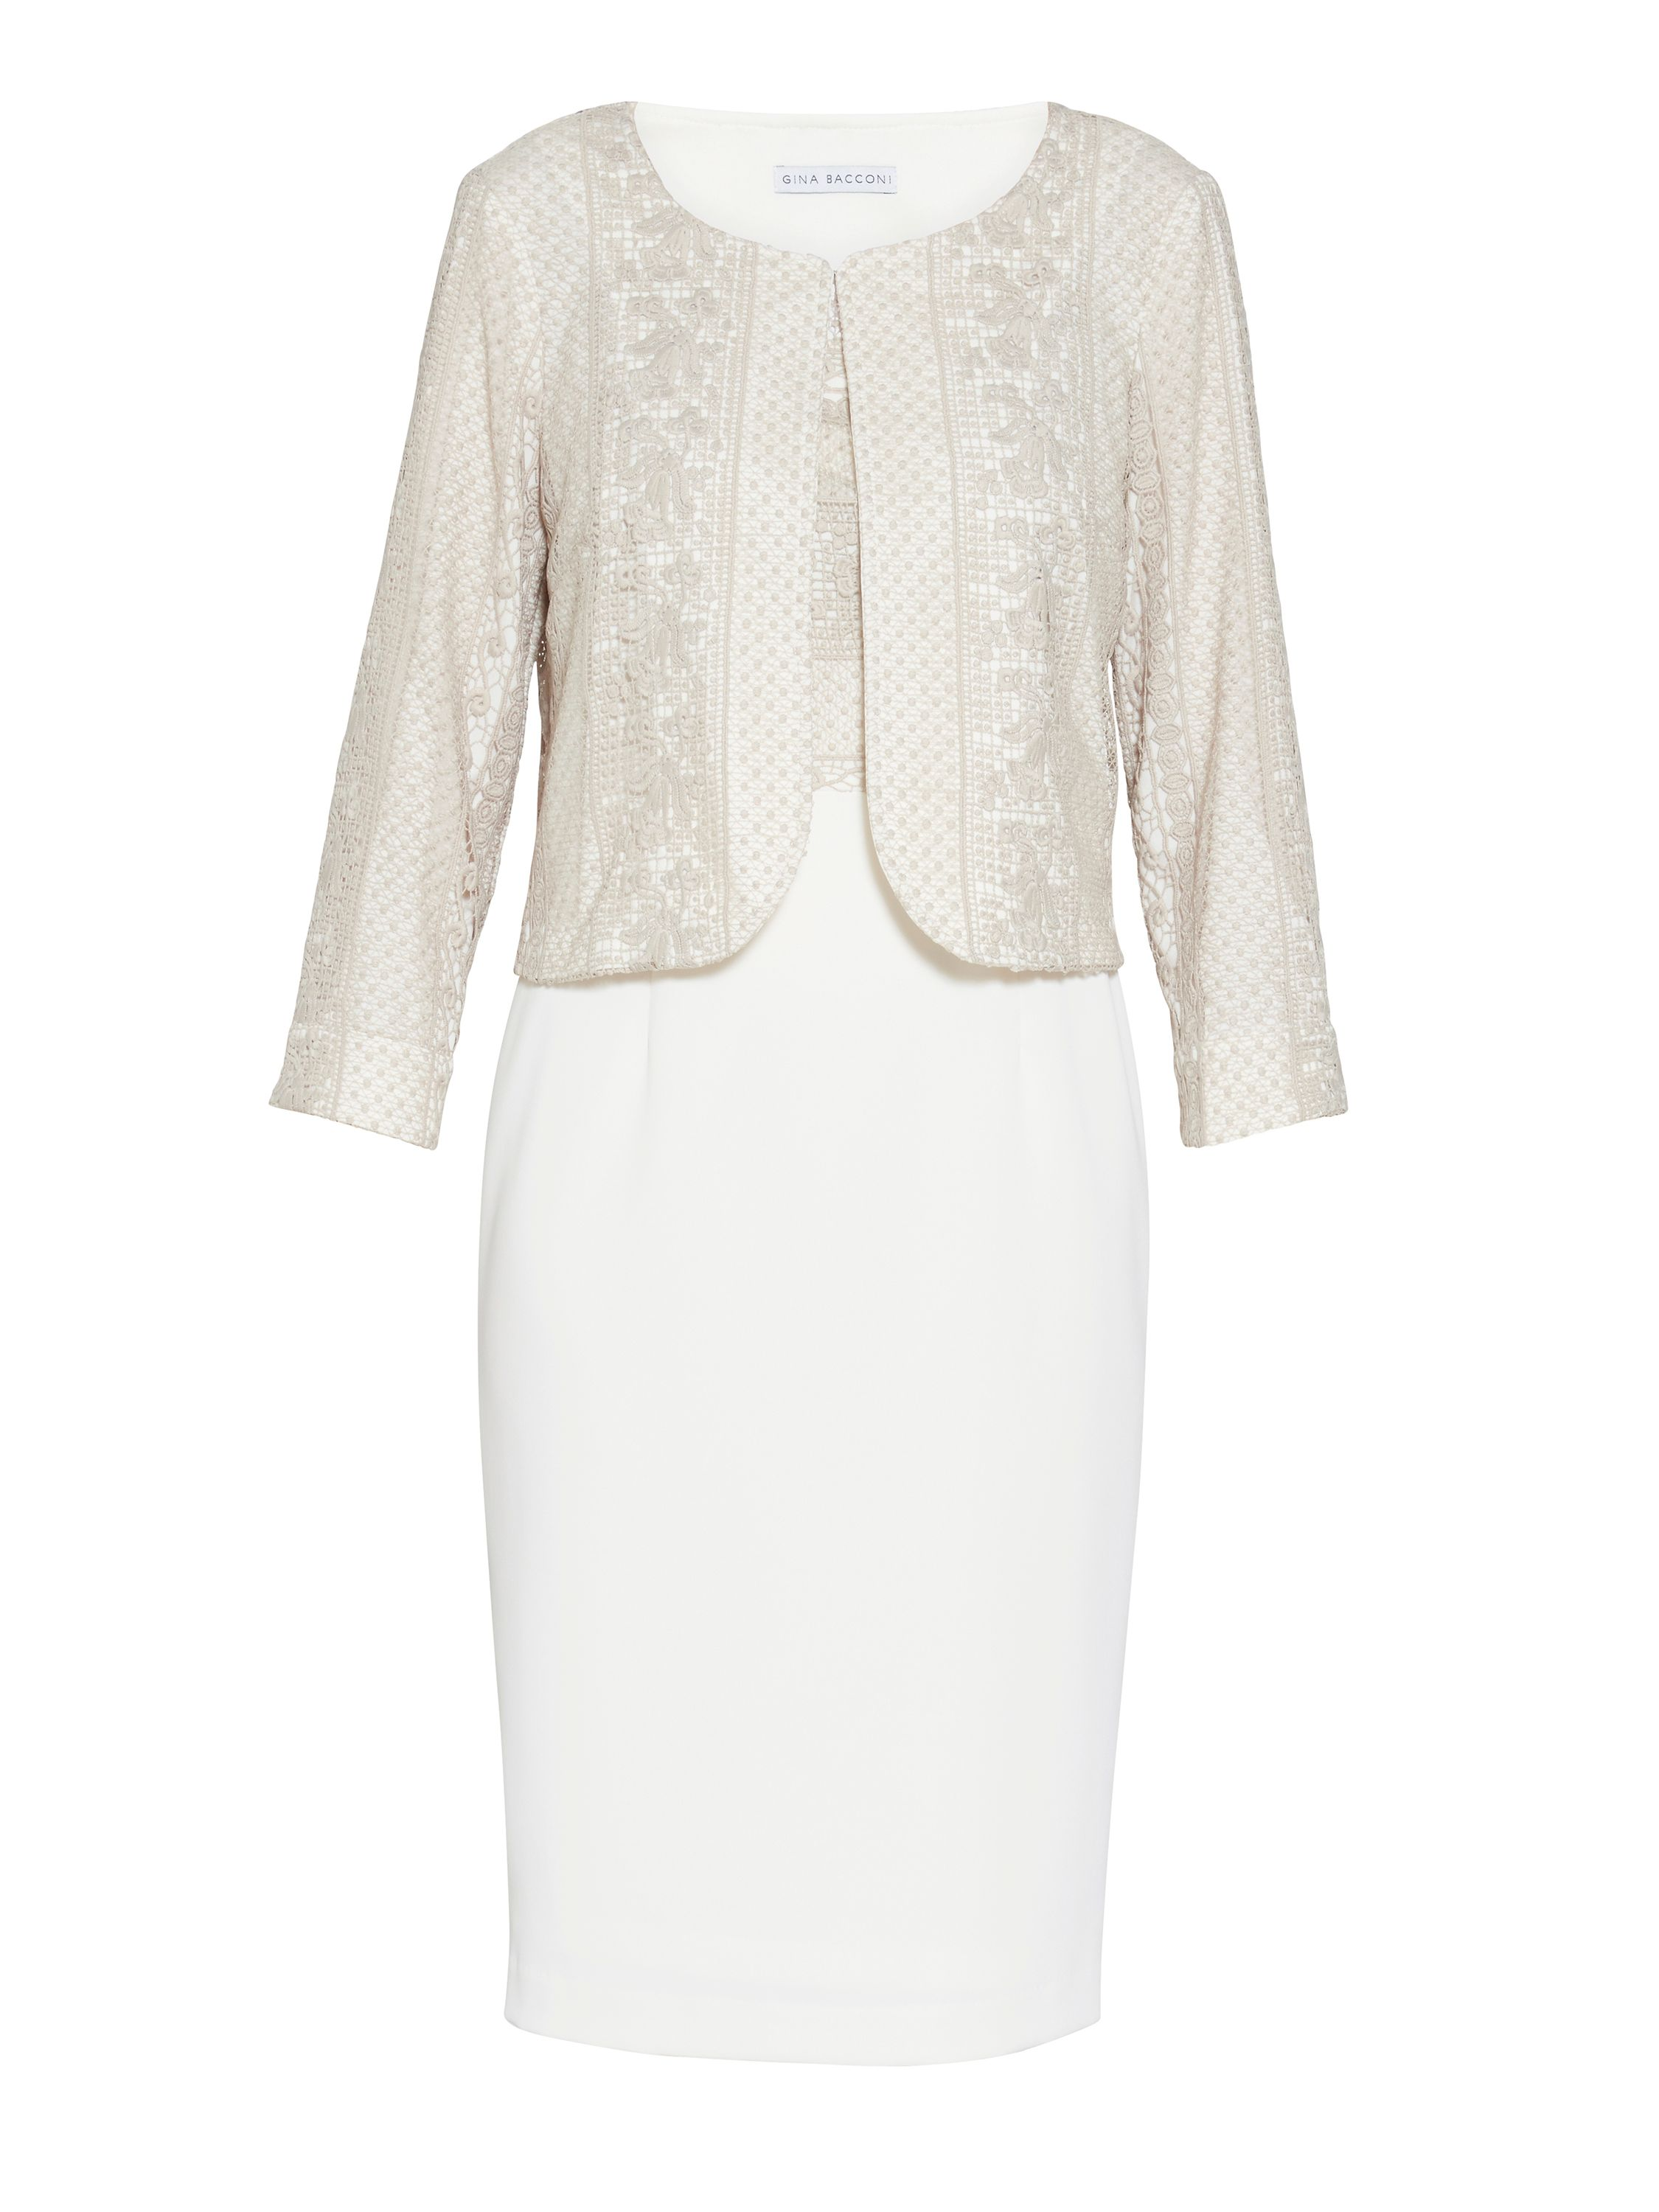 Gina Bacconi Crepe and embroidery dress and jacket, White